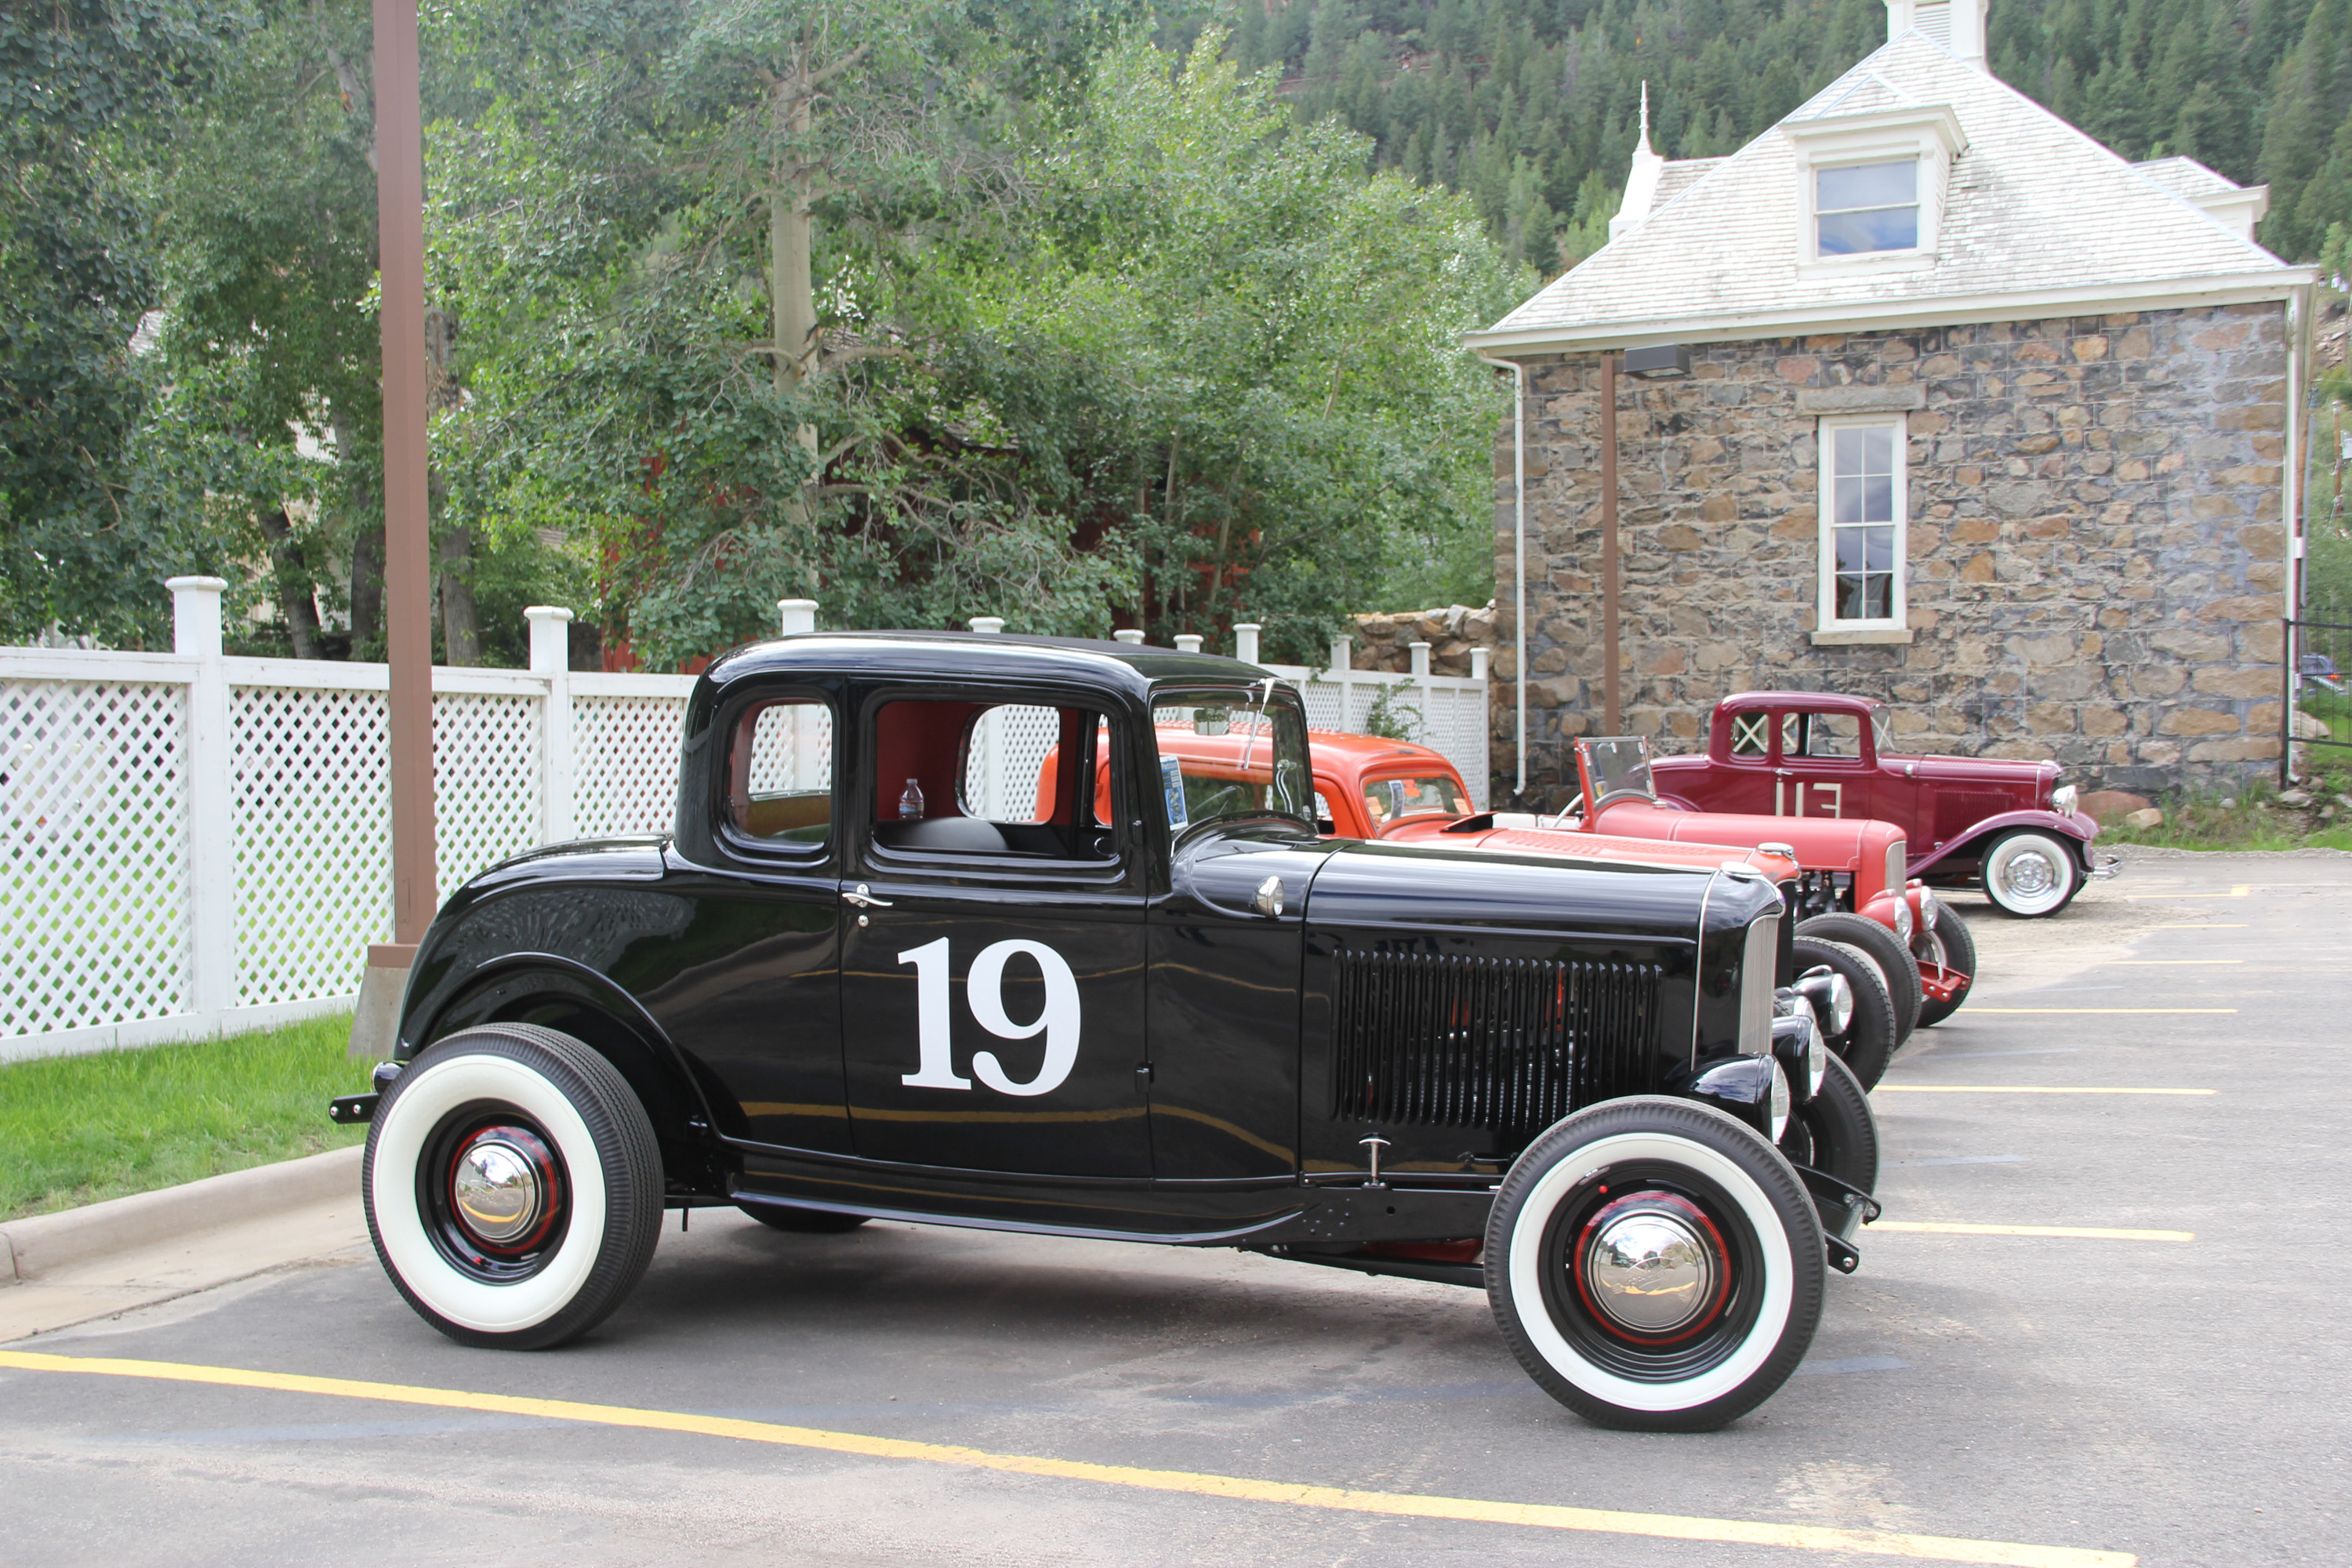 1932 Ford Deuce coupe hot rod number 19